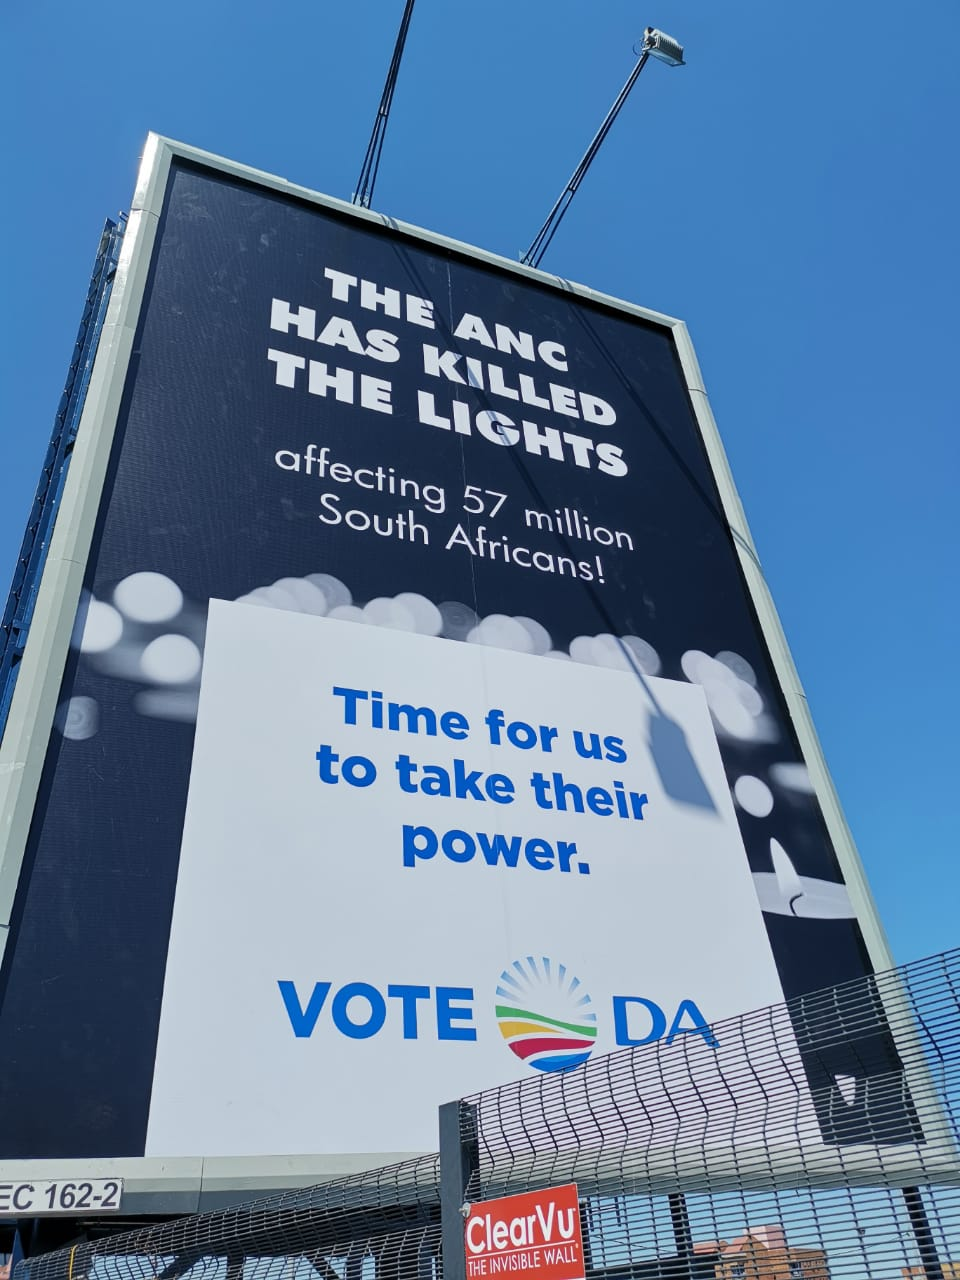 The ANC killed the lights. Time for the people to vote the ANC out of power!